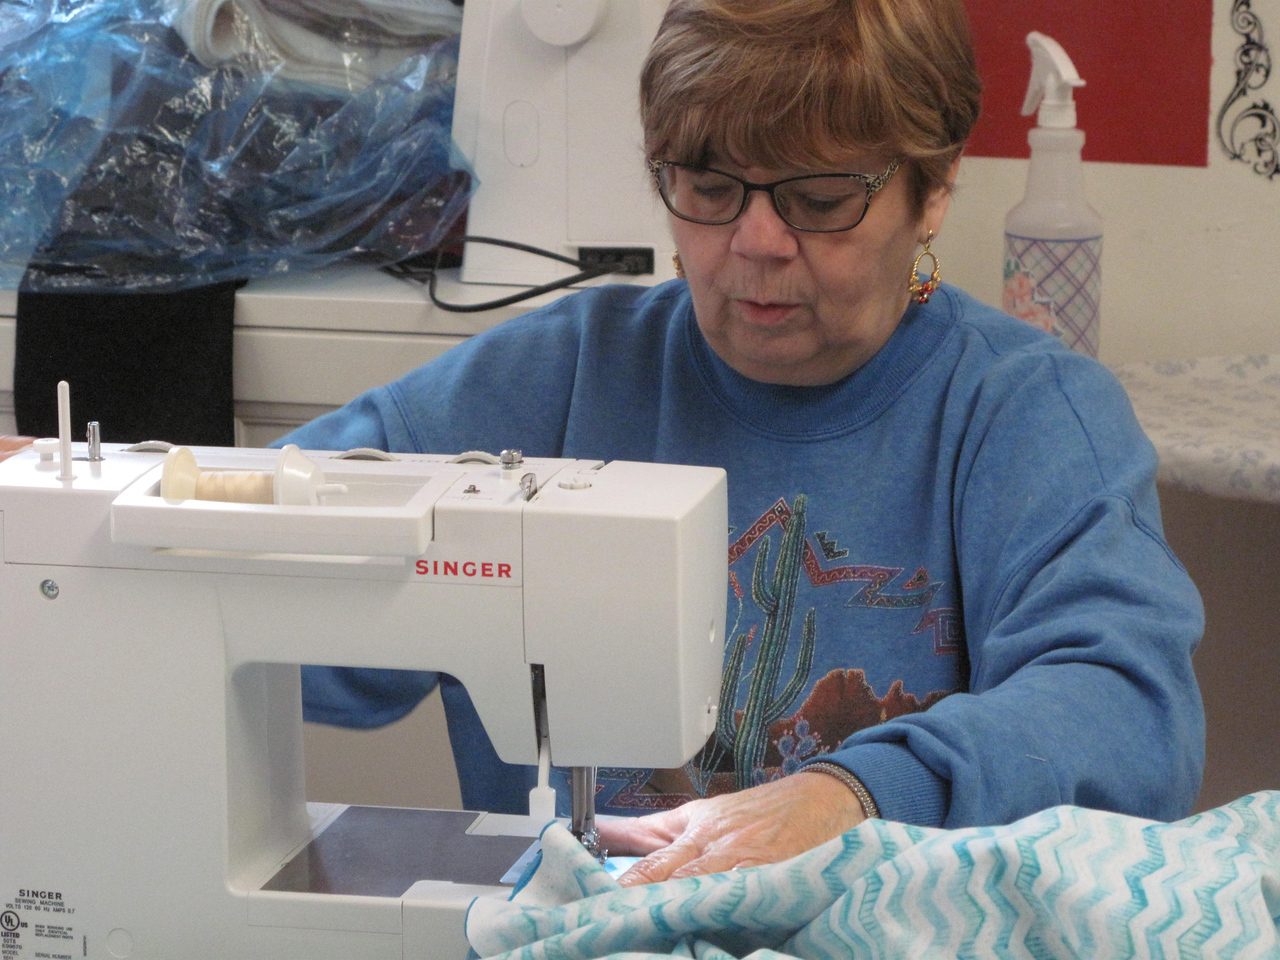 ELIZABETH DOBBINS / GAZETTE Kris May of Brunswick concentrates as she sews her latest project.